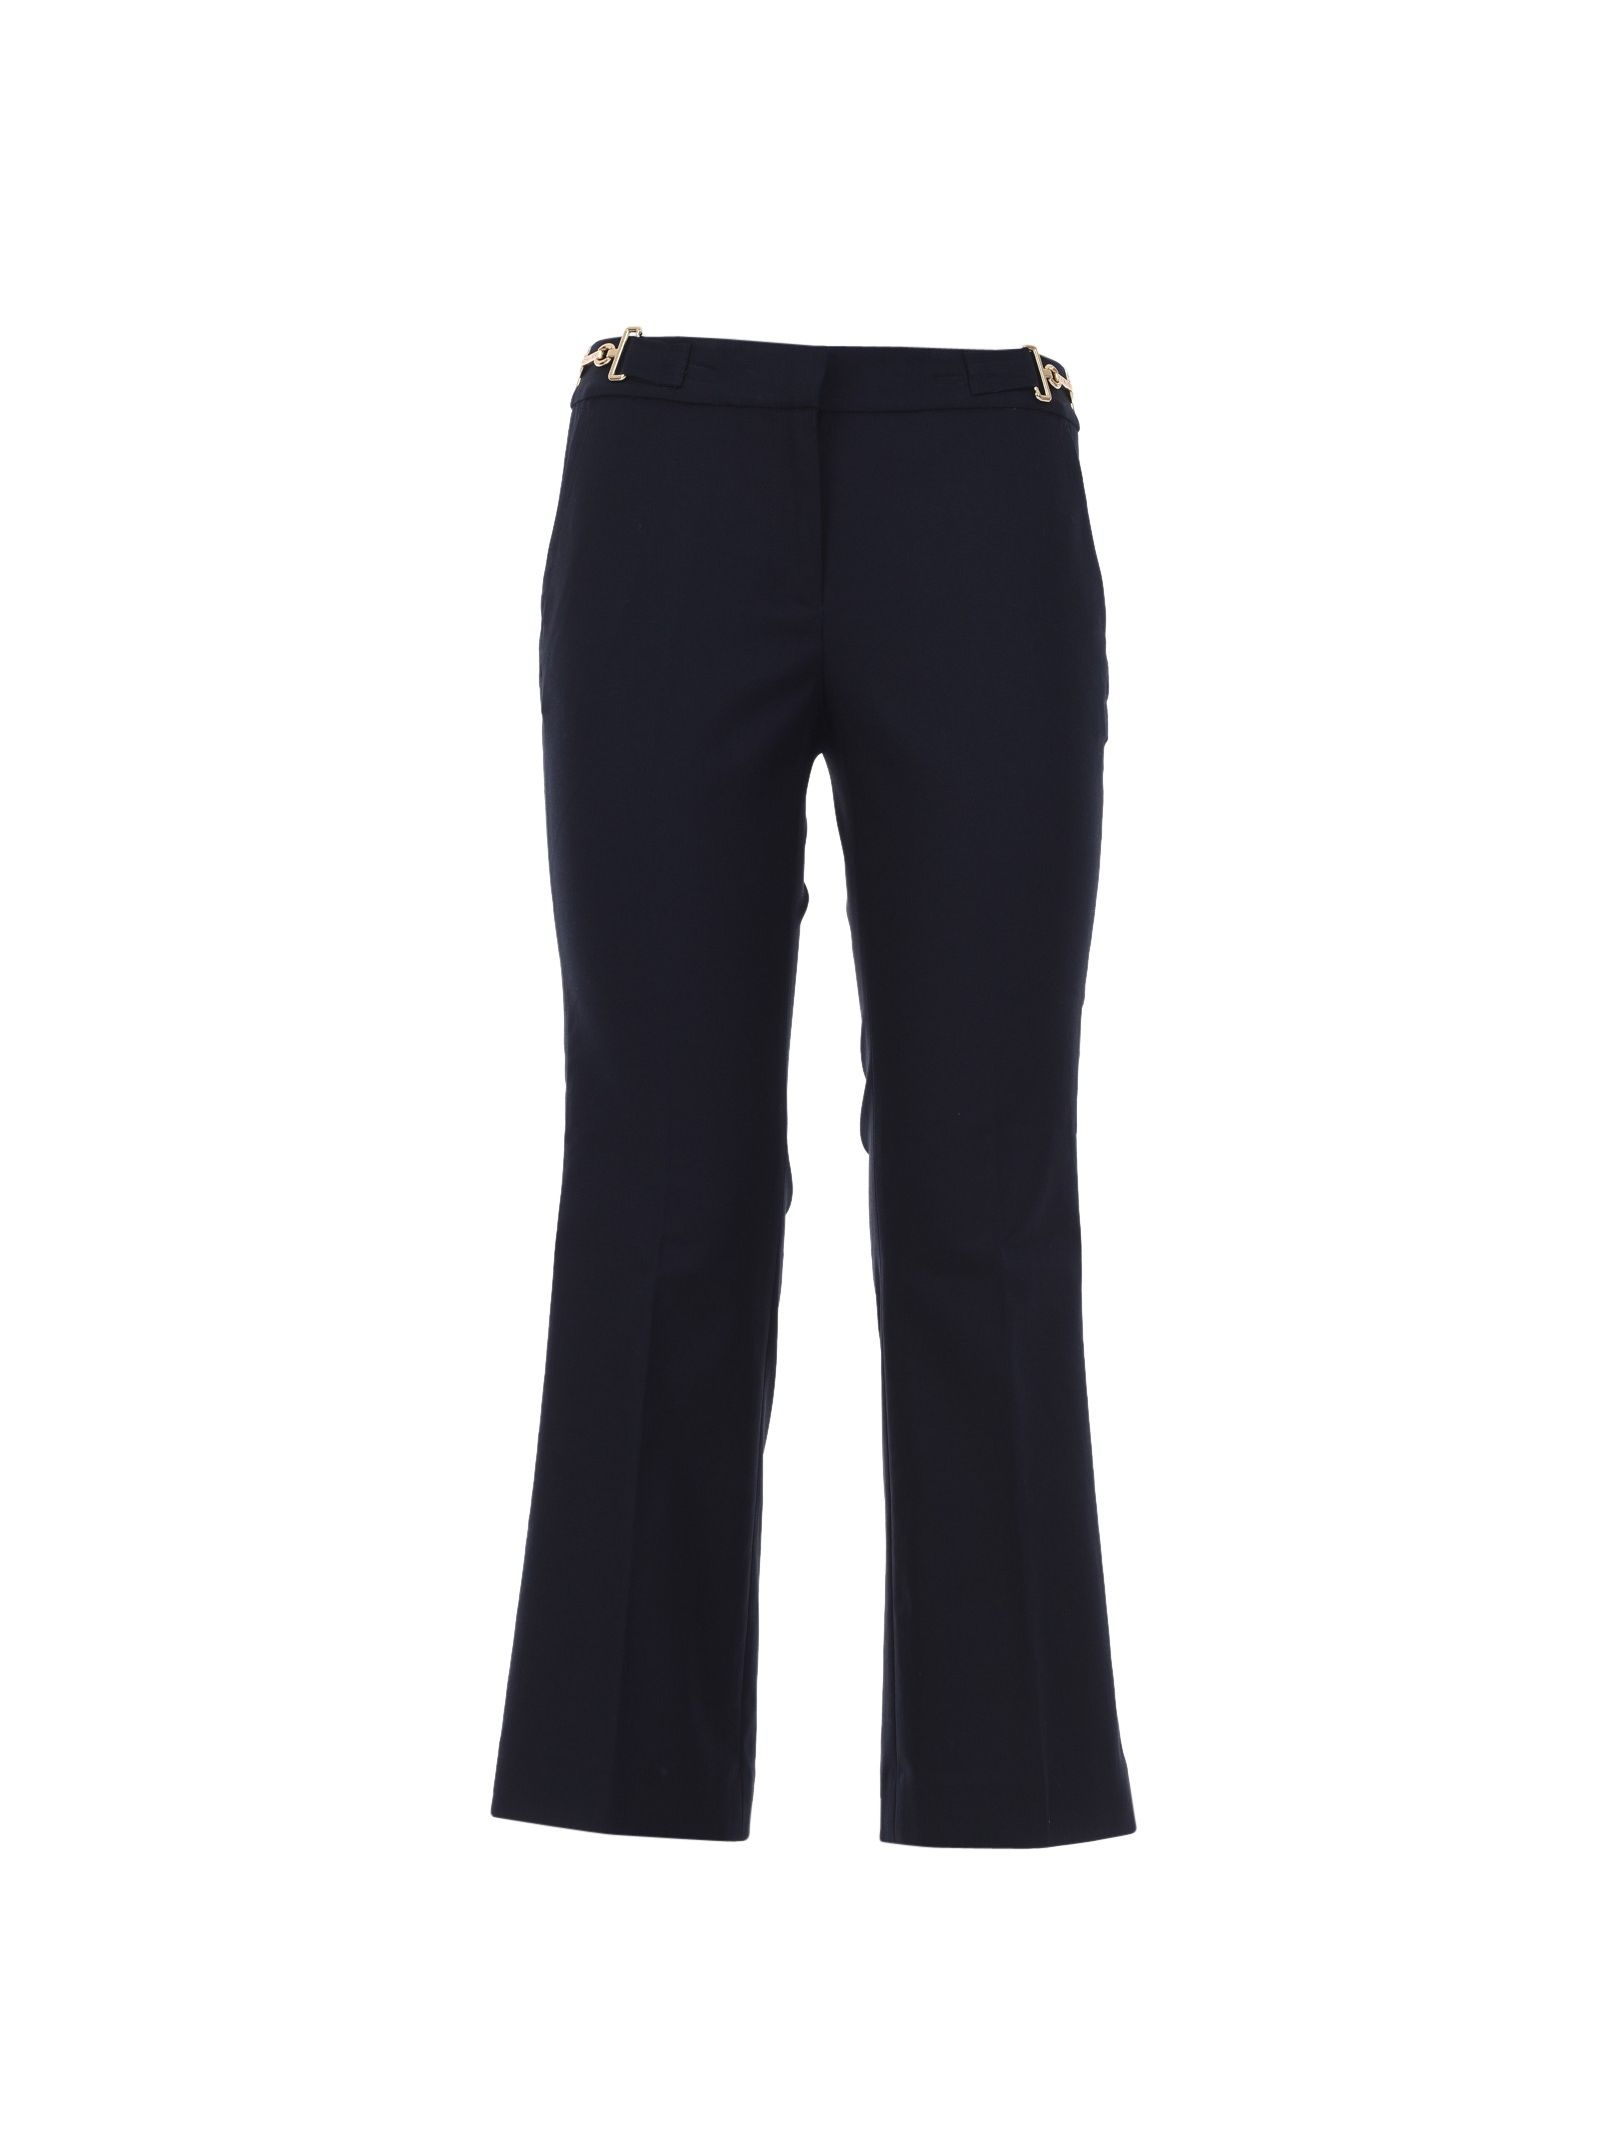 Michael Kors Blue Women Pants